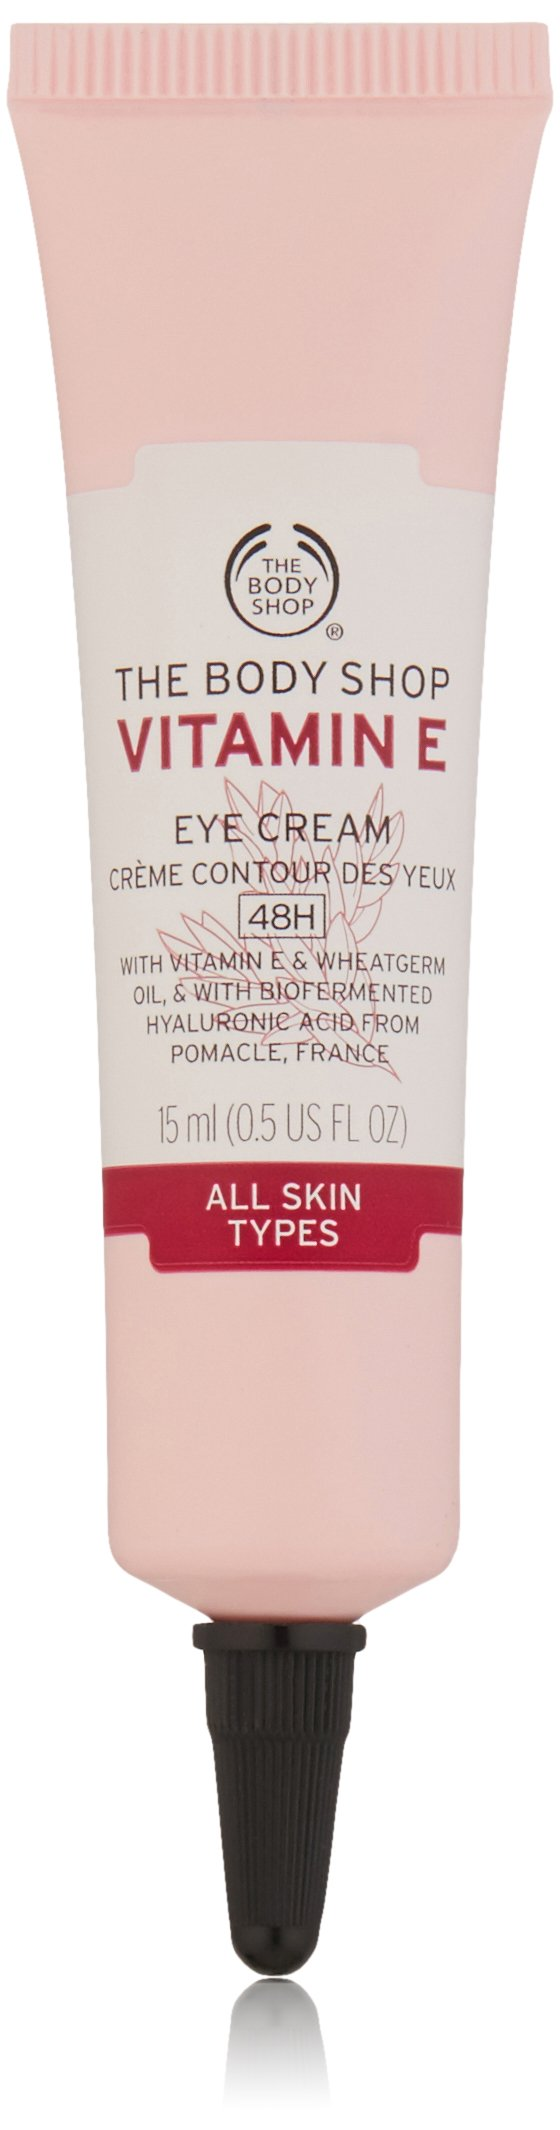 The Body Shop Vitamin E Eye Cream Paraben Free 0 5 Oz Buy Online In Jamaica The Body Shop Products In Jamaica See Prices Reviews And Free Delivery Over J 10 000 Desertcart